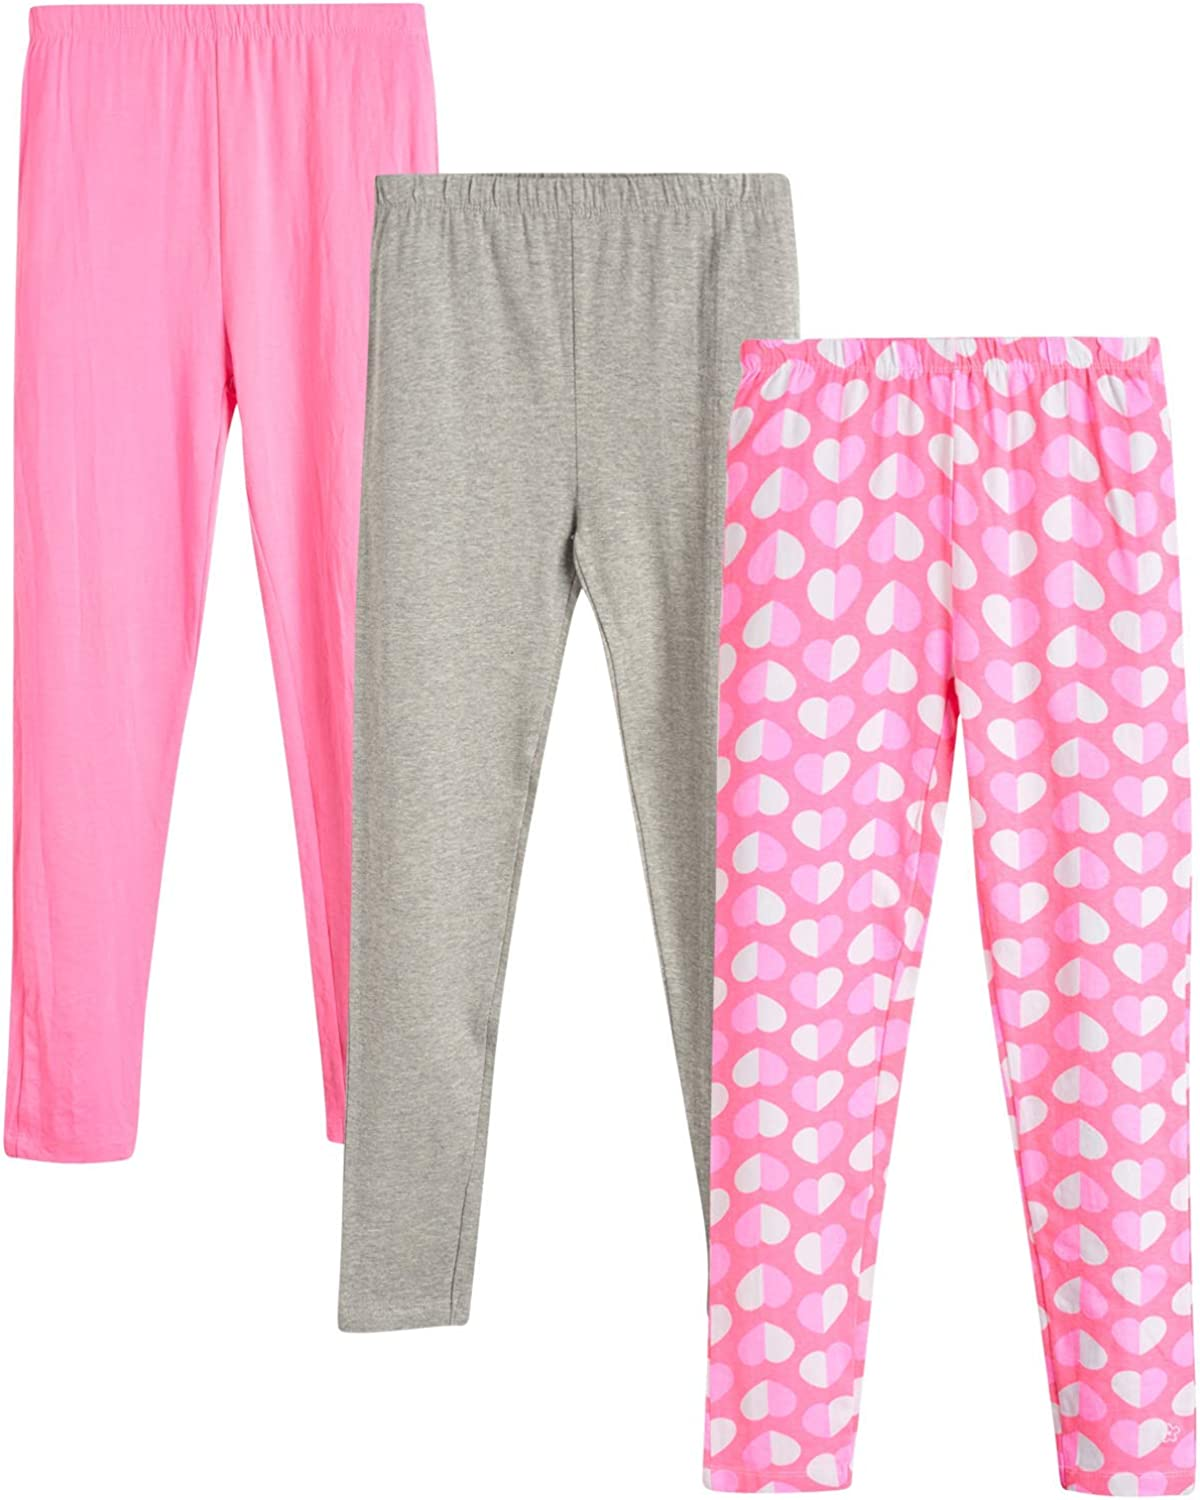 Limited Too Girls' Over item handling ☆ Assorted Casual Knit Solids in and P Leggings shopping